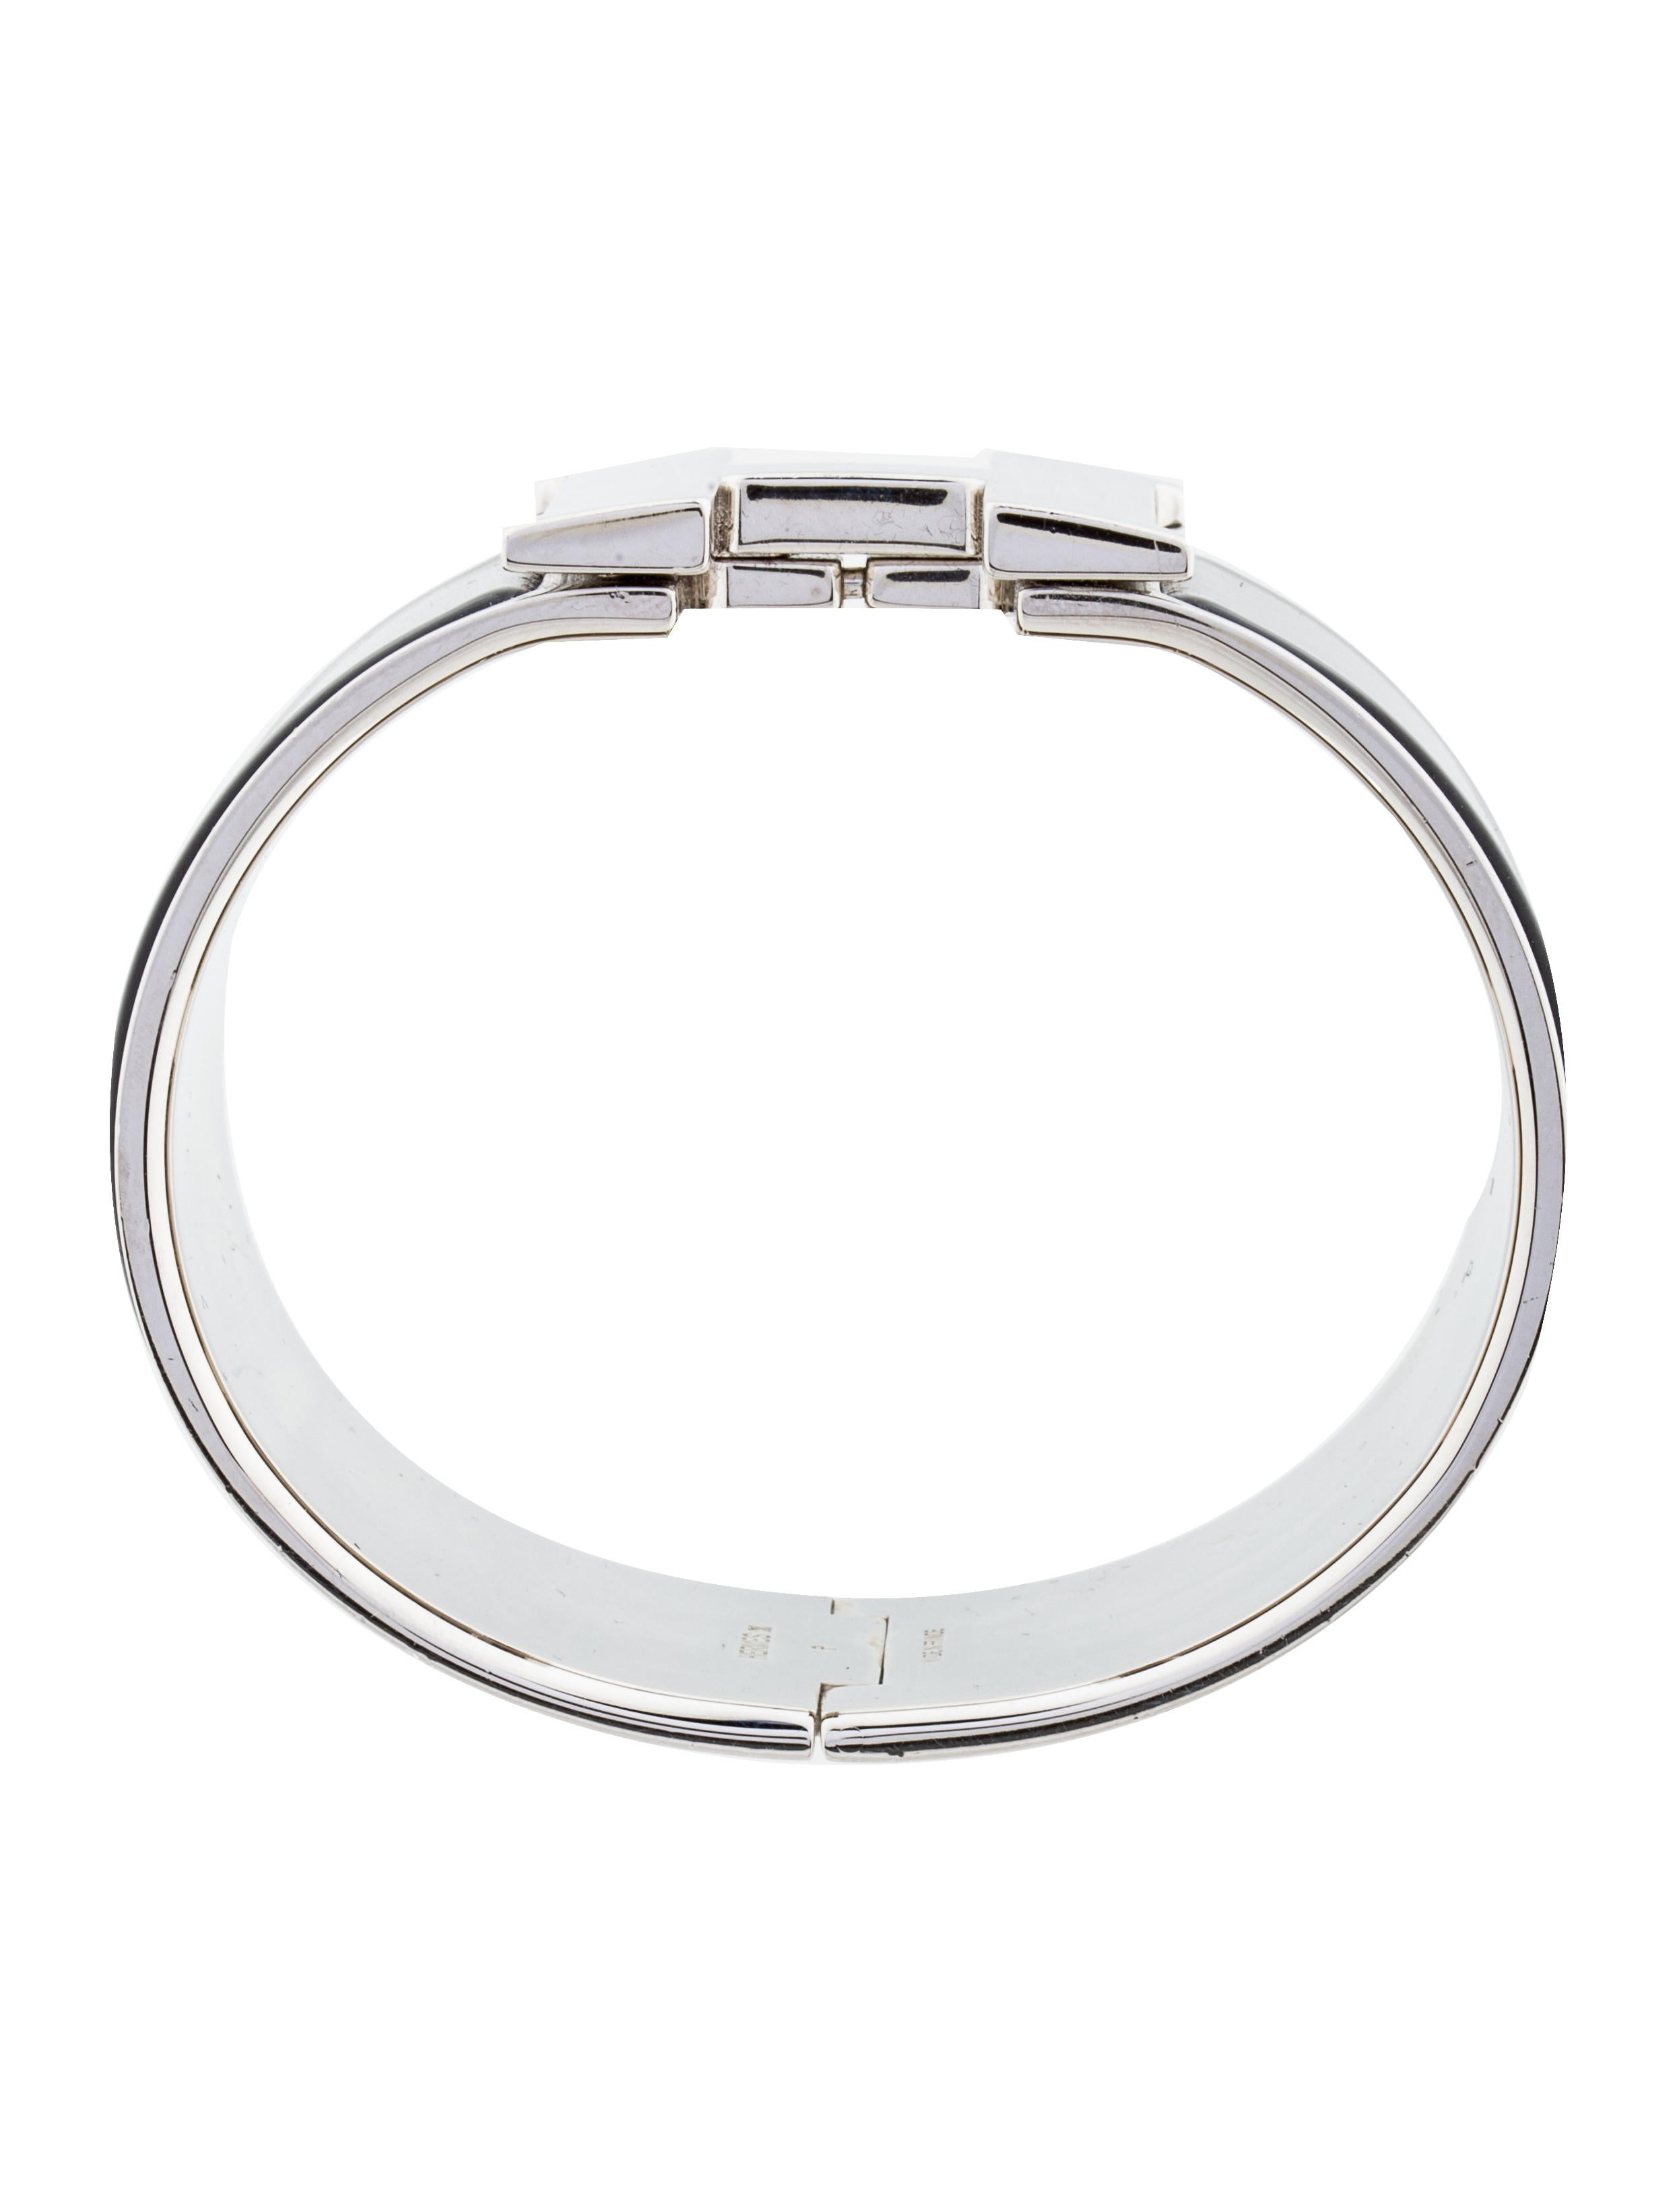 Herm s extra wide clic clac h bracelet bracelets her89821 the realreal - Dimensions clic clac ...